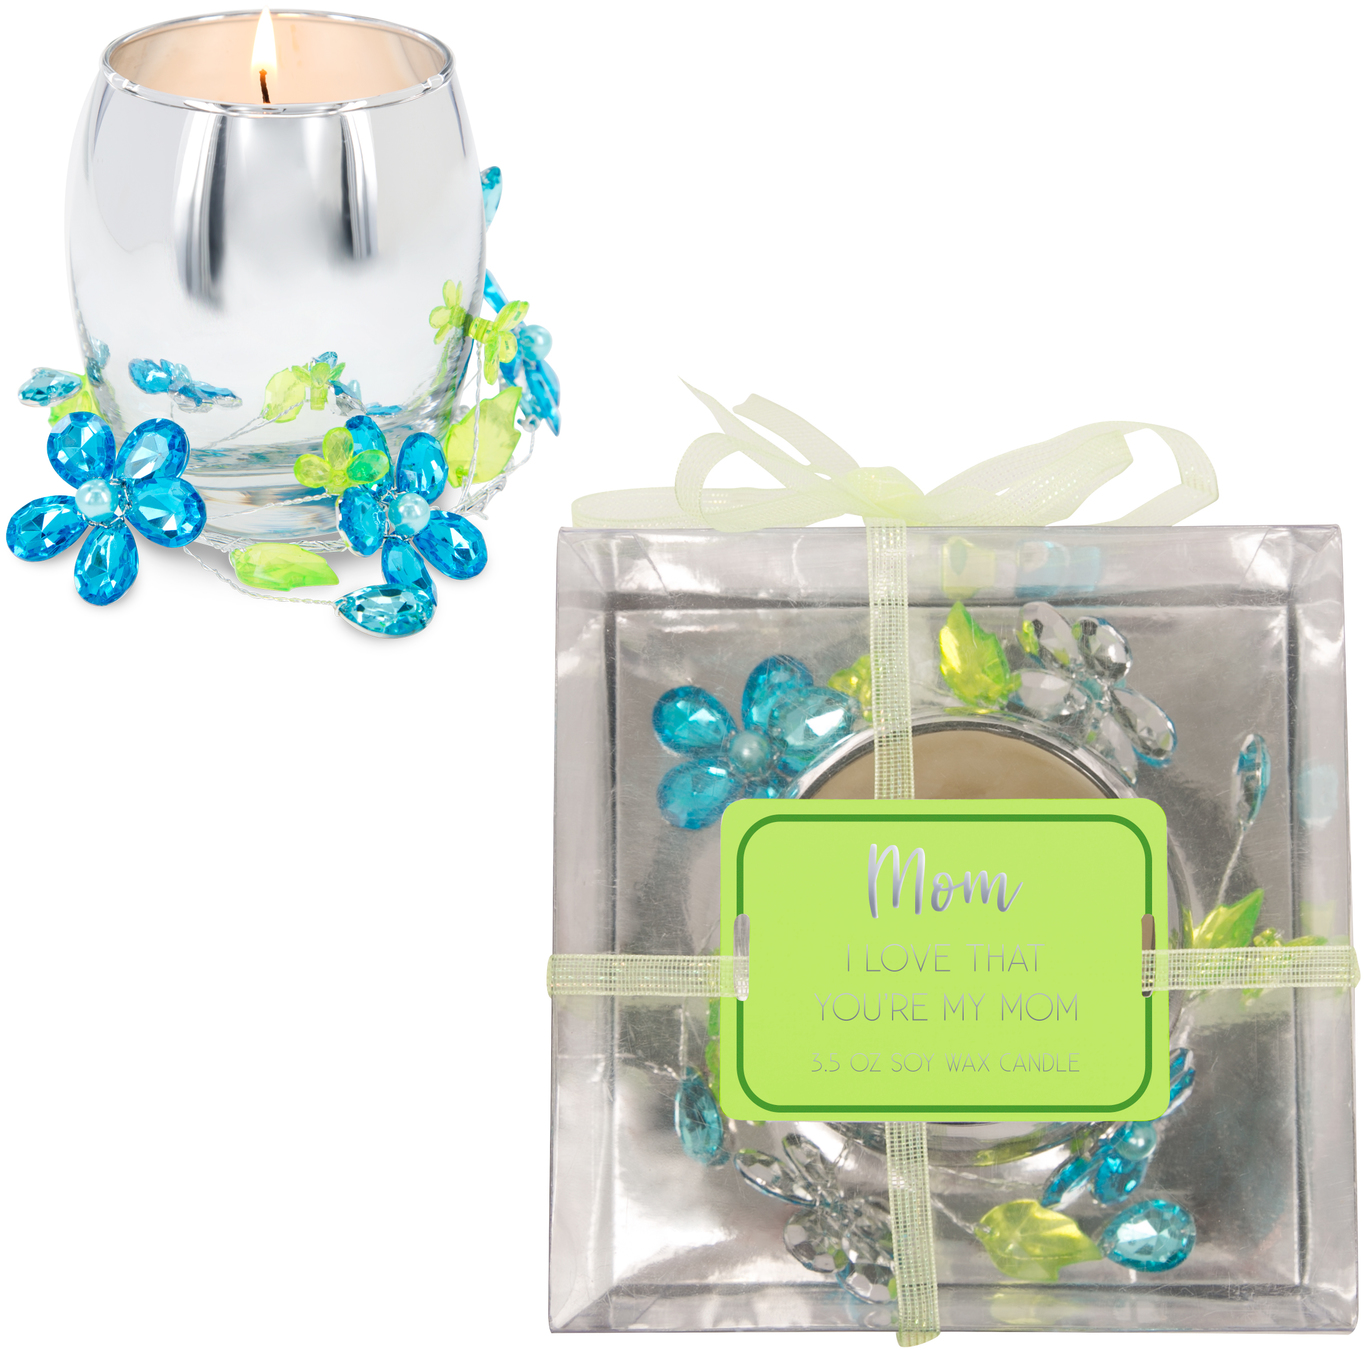 Mom Blue Flower by Reflections of You - Mom Blue Flower - 3.5oz 100% Soy Wax Candle Scent: Jasmine